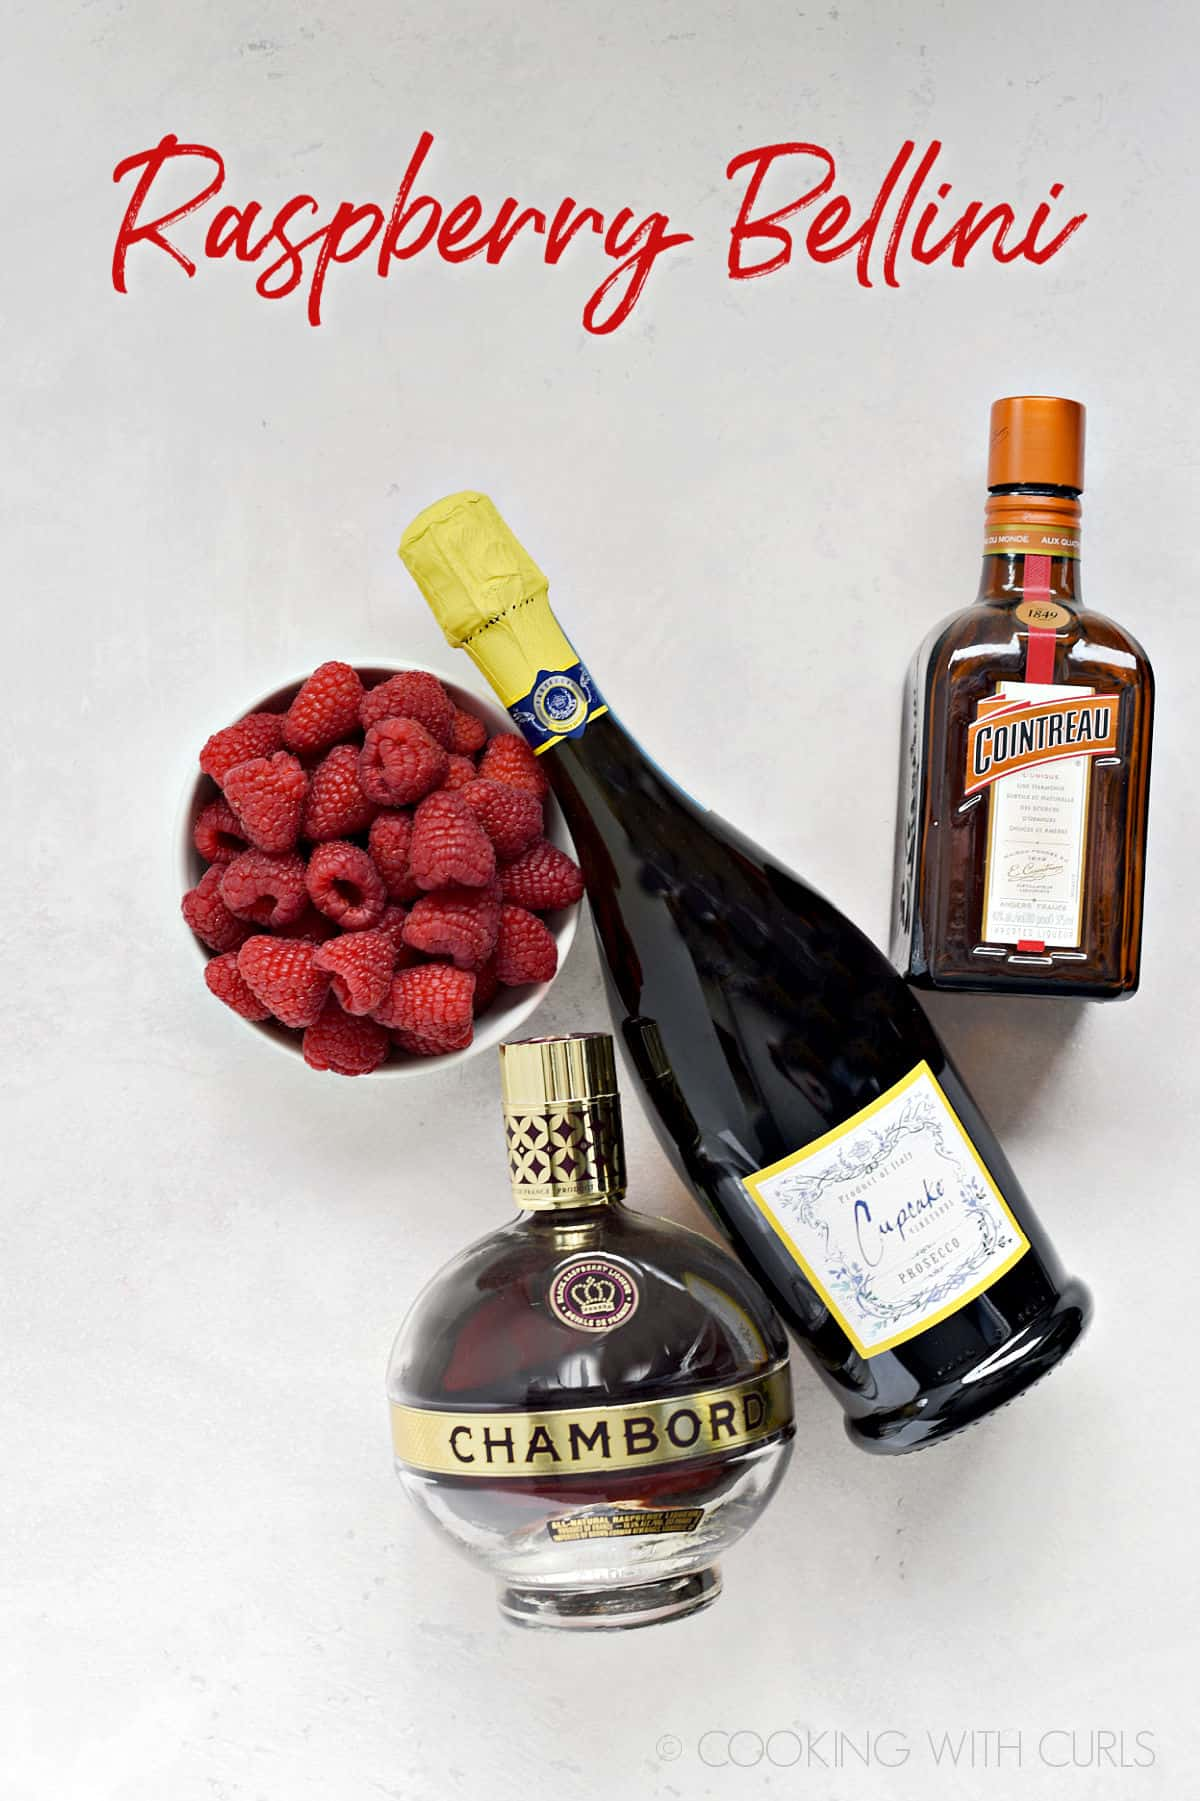 A bowl of fresh raspberries and bottles of prosecco, Cointreau and Chambord.